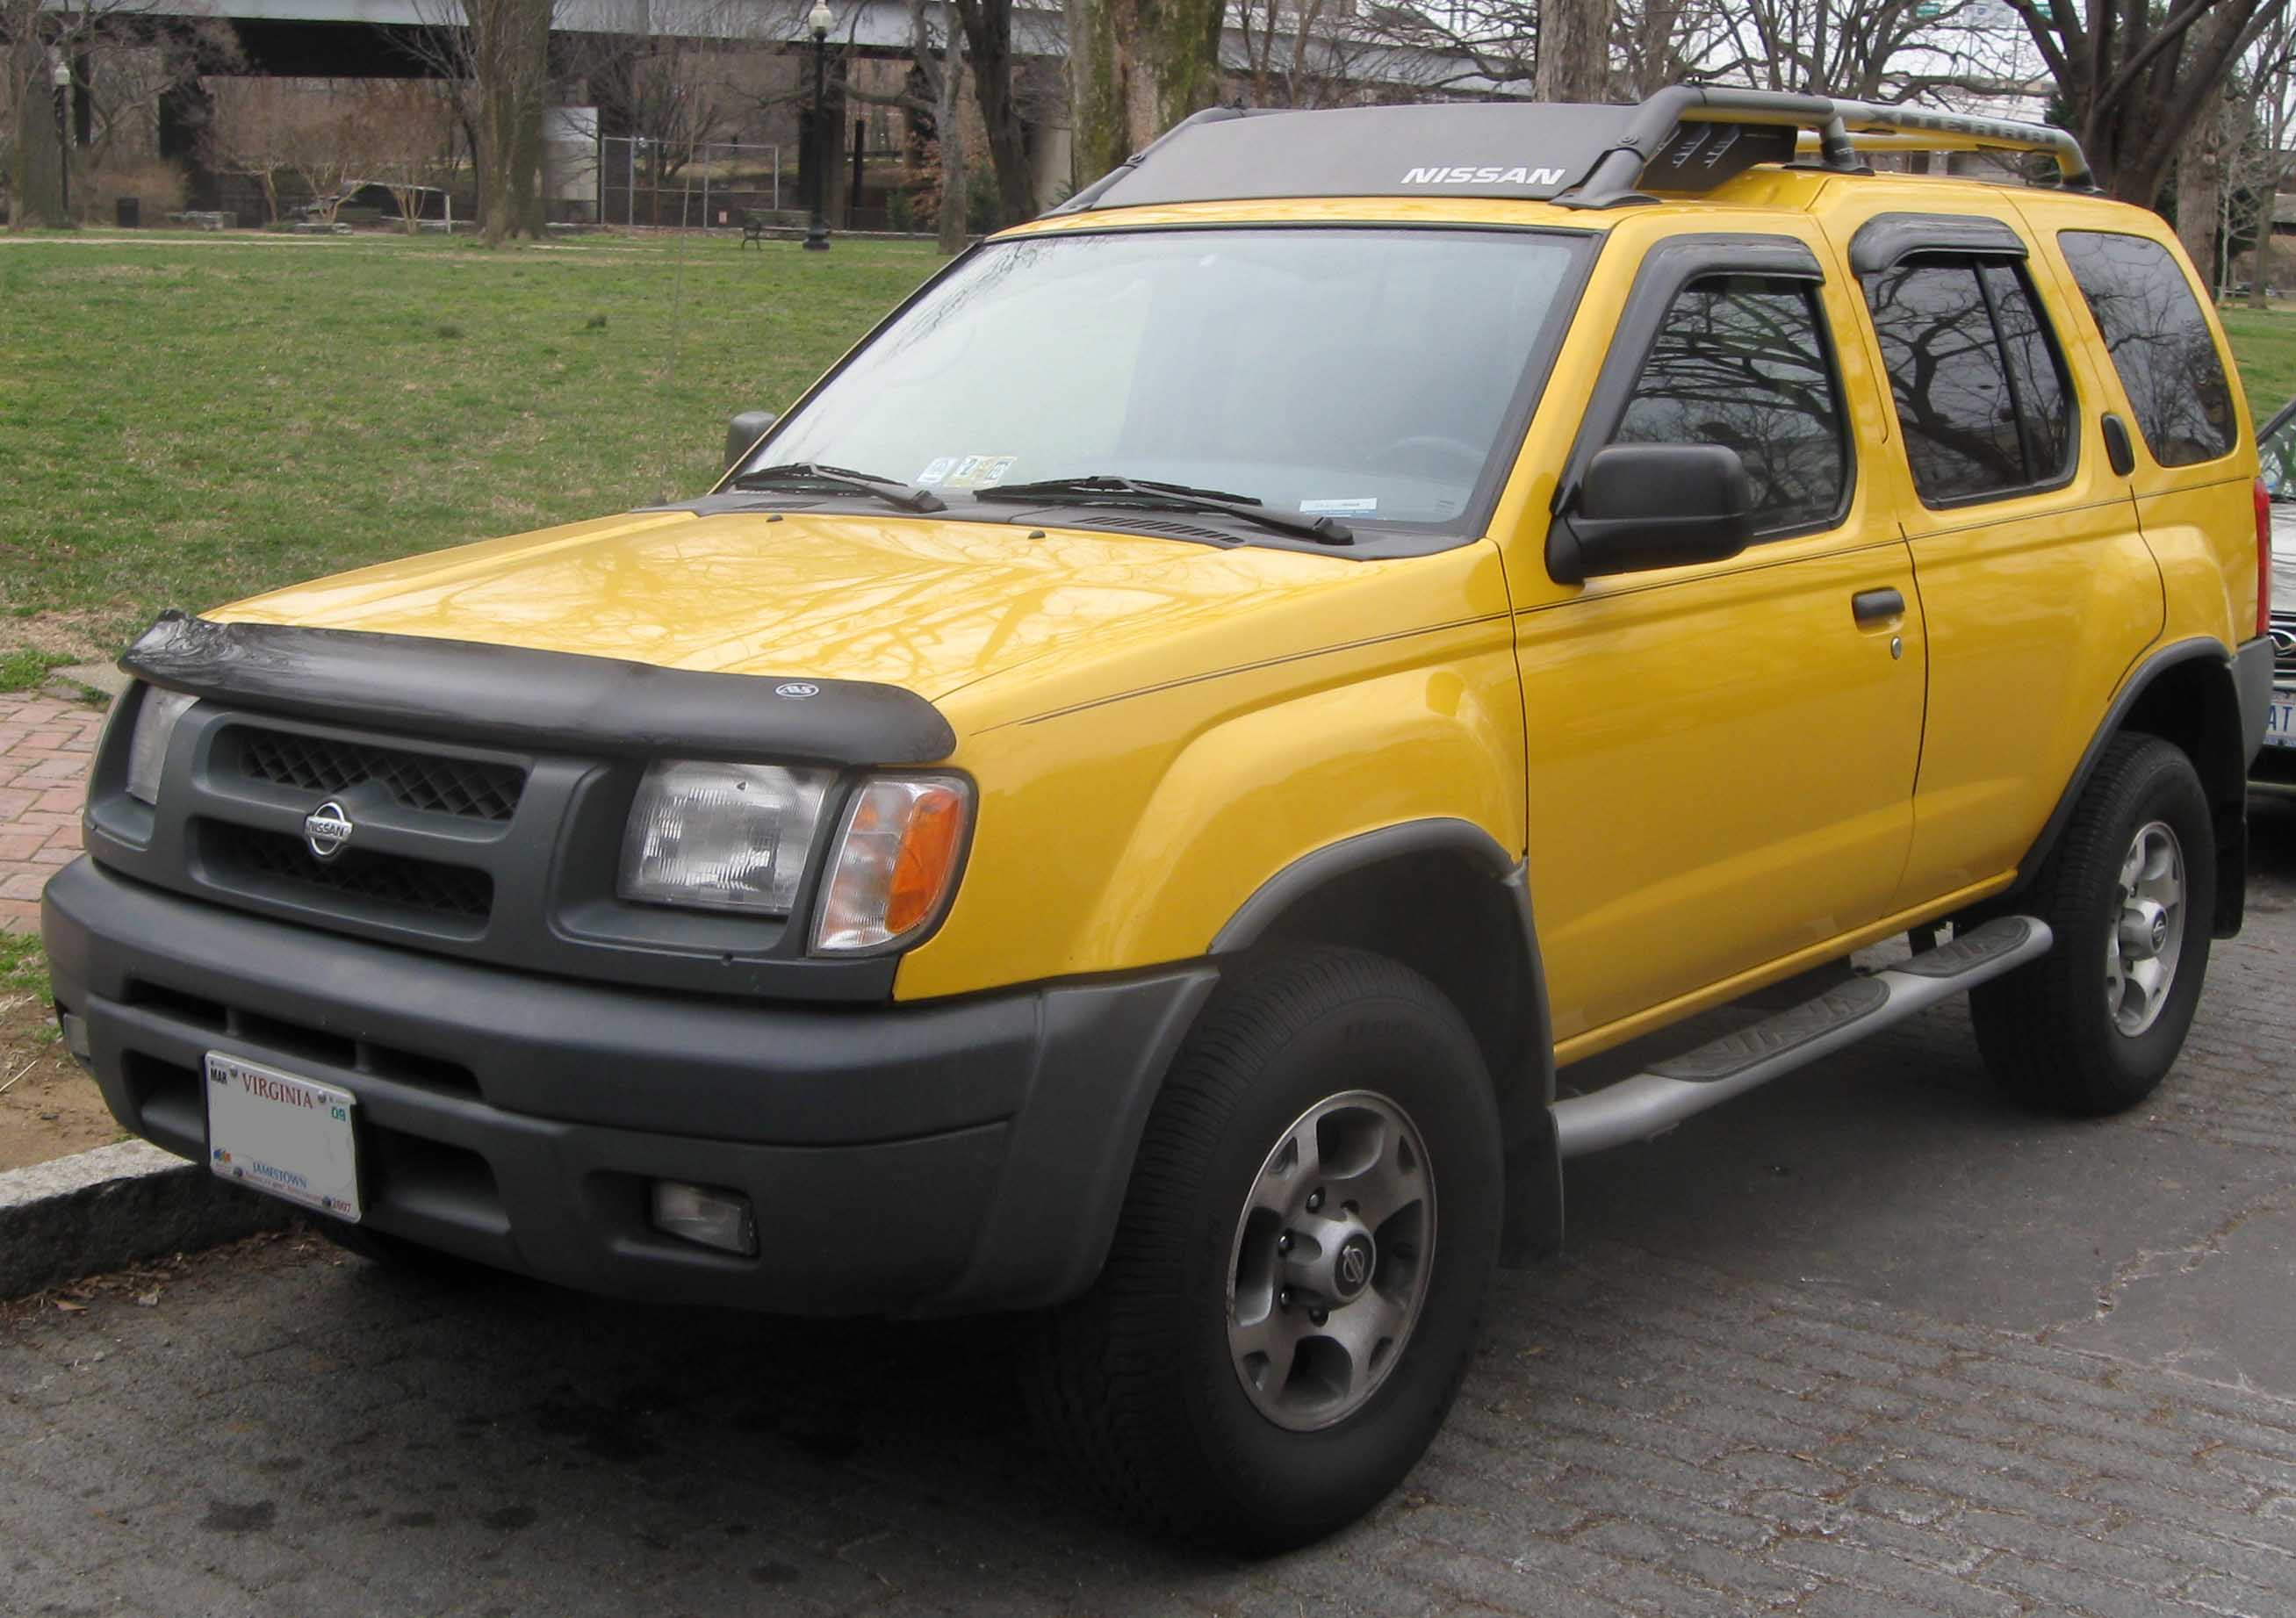 2001 Nissan Xterra Information and photos ZombieDrive